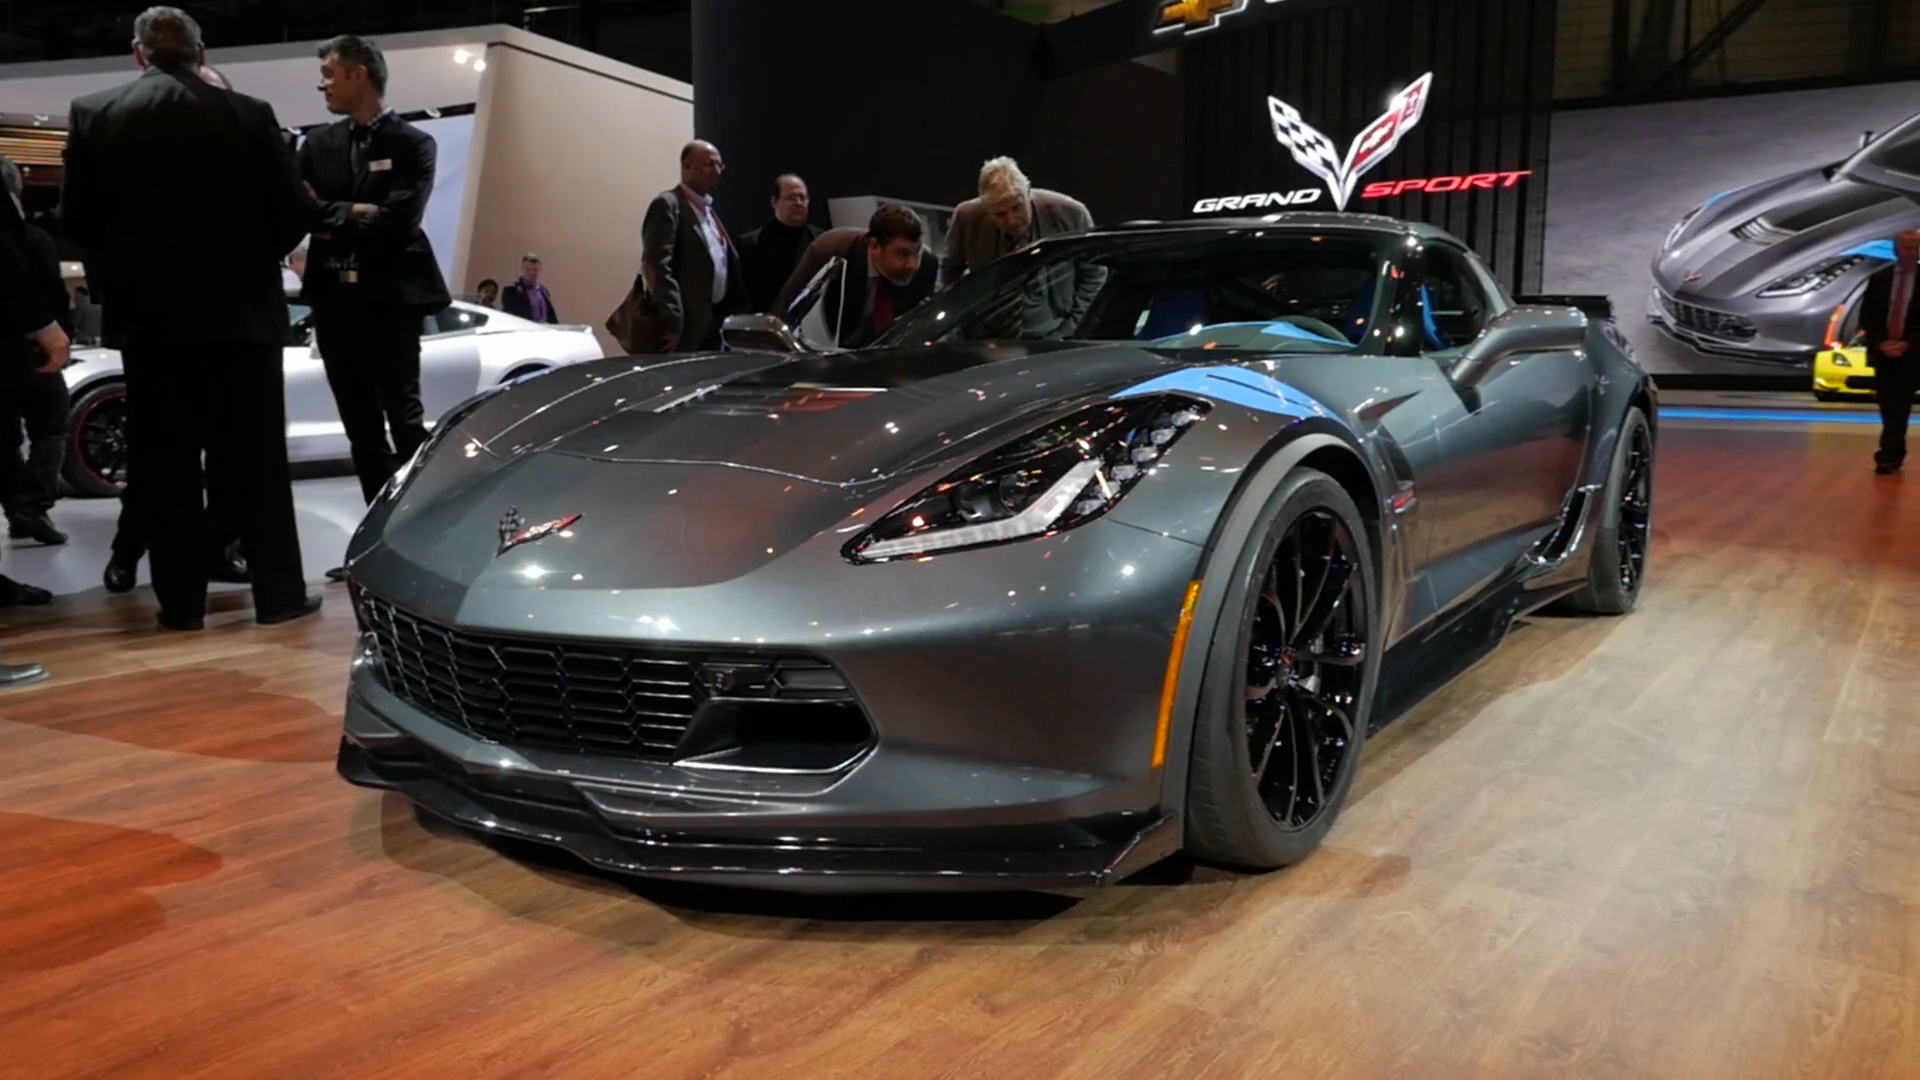 2017 Chevrolet Corvette Grand Sport | 2016 Geneva Motor Show | Beauty-Roll